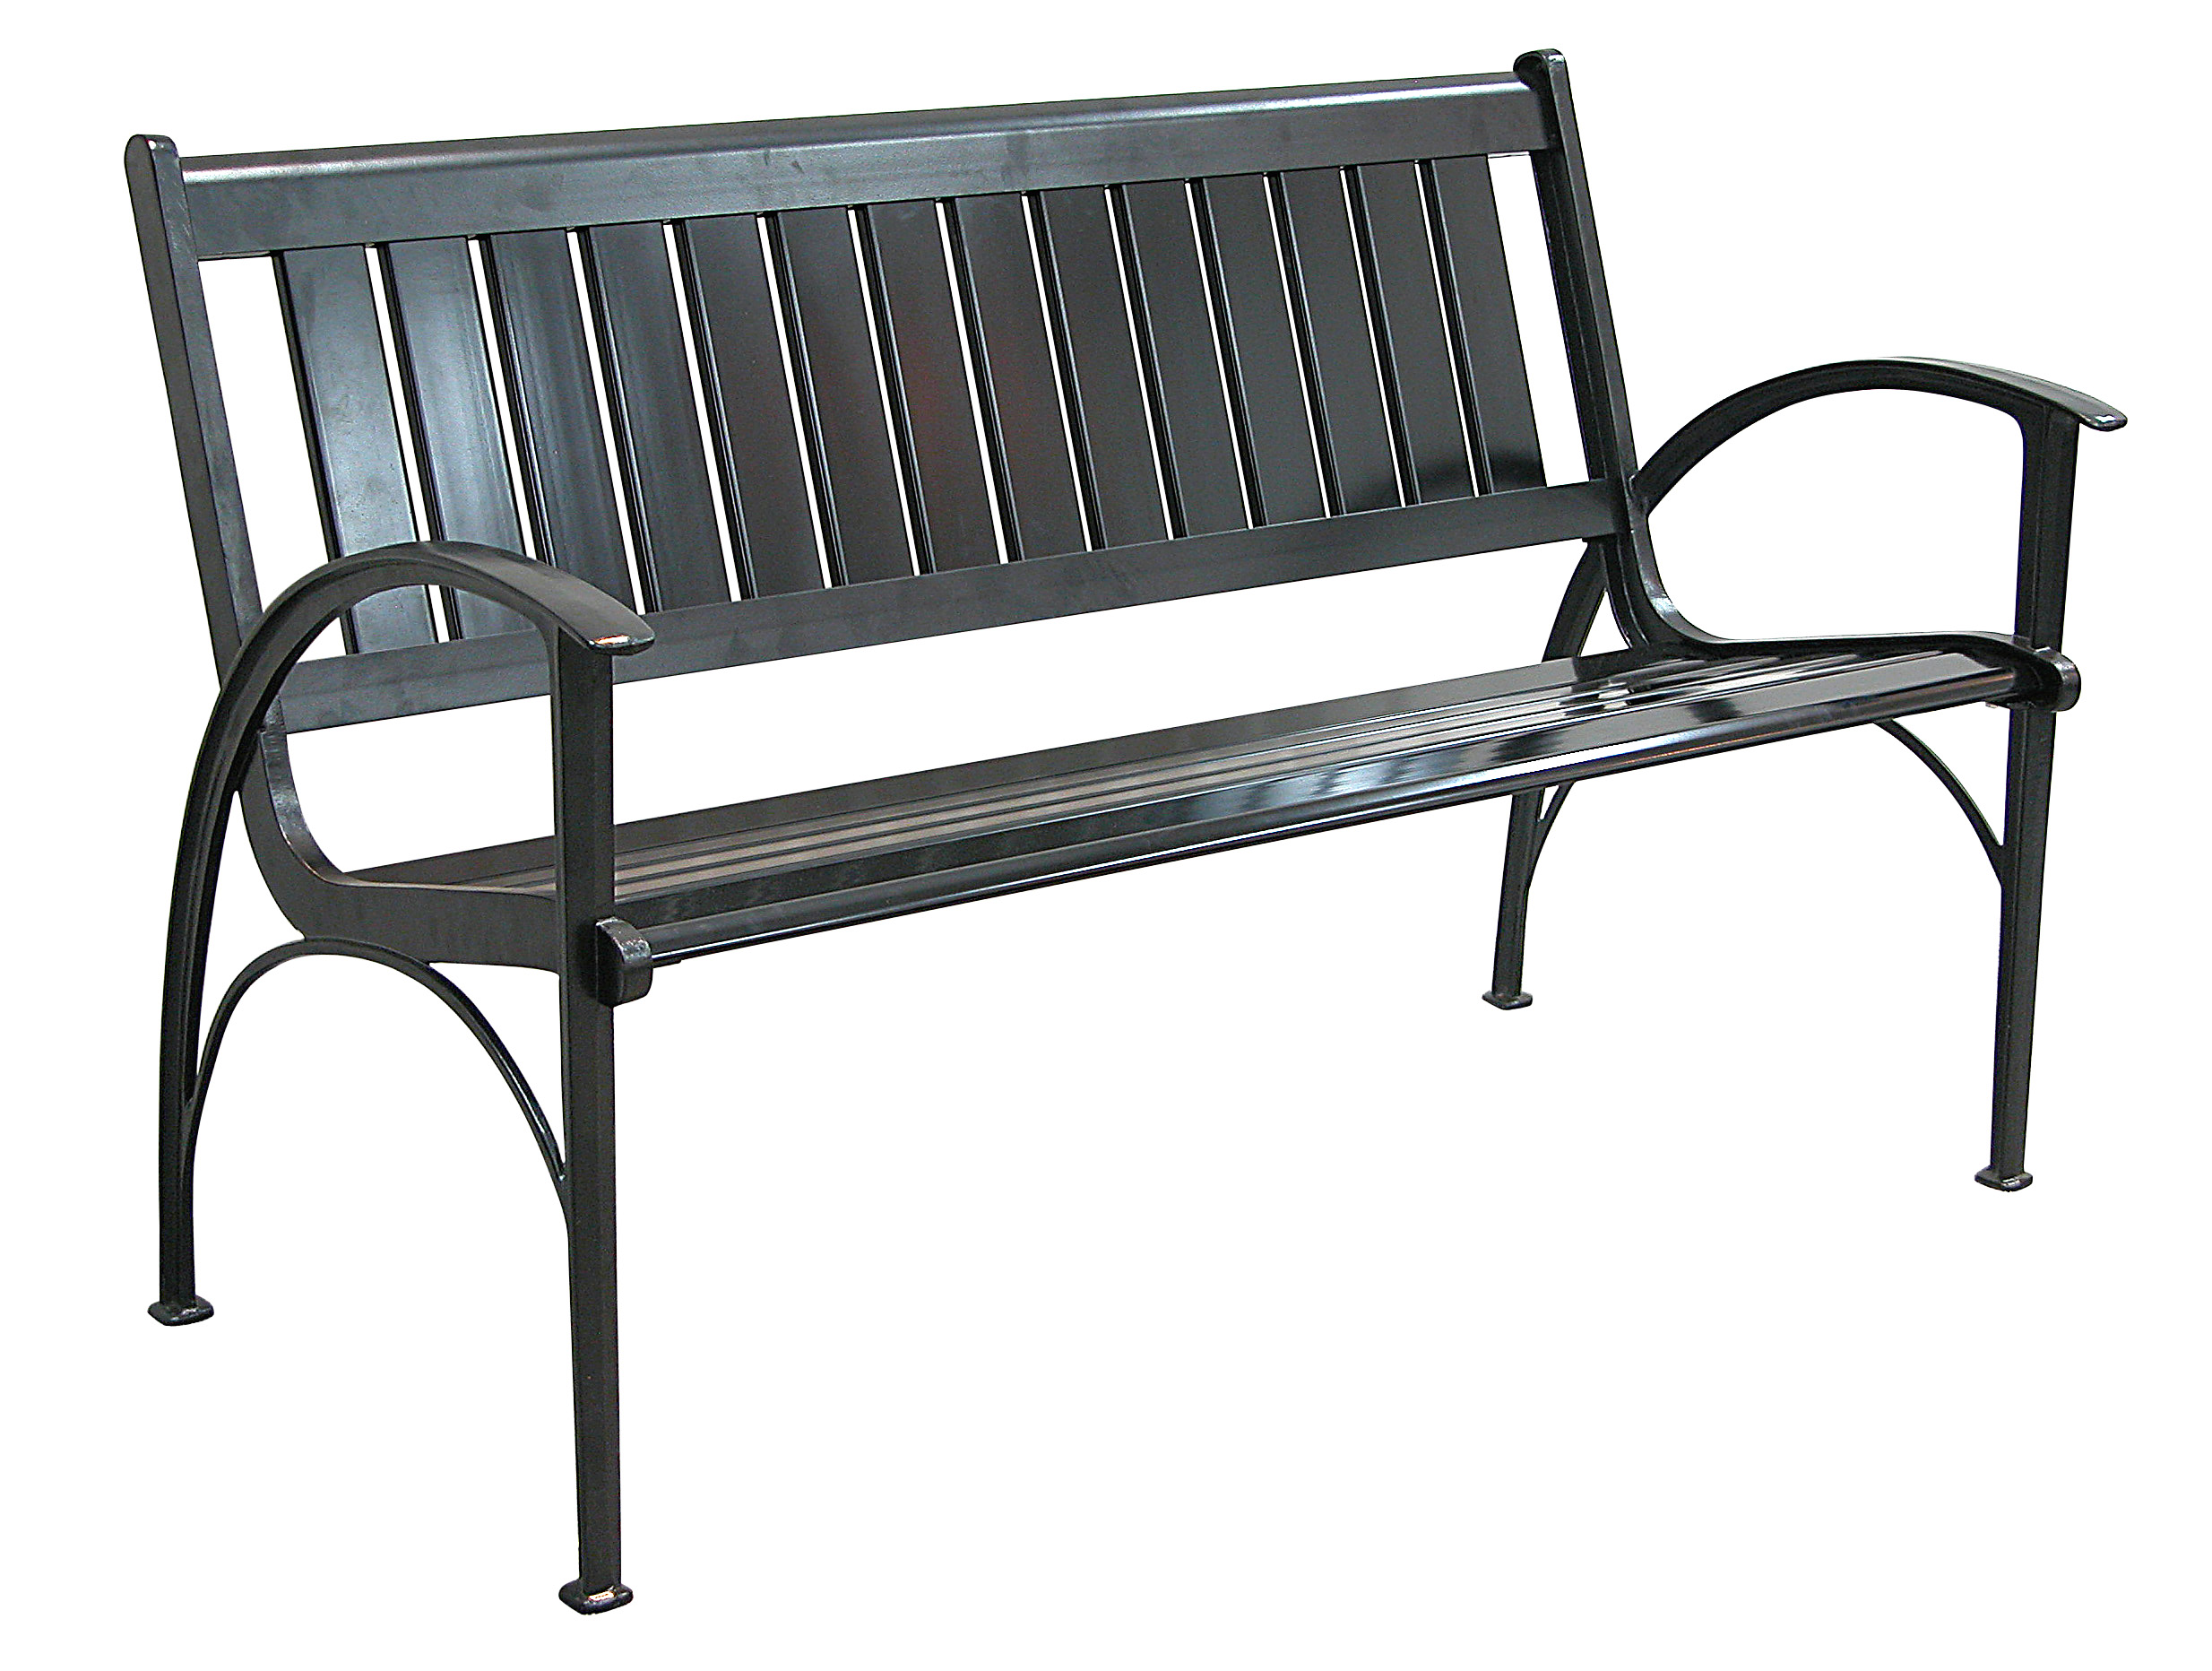 patio furniture bench contemporary cast aluminum black